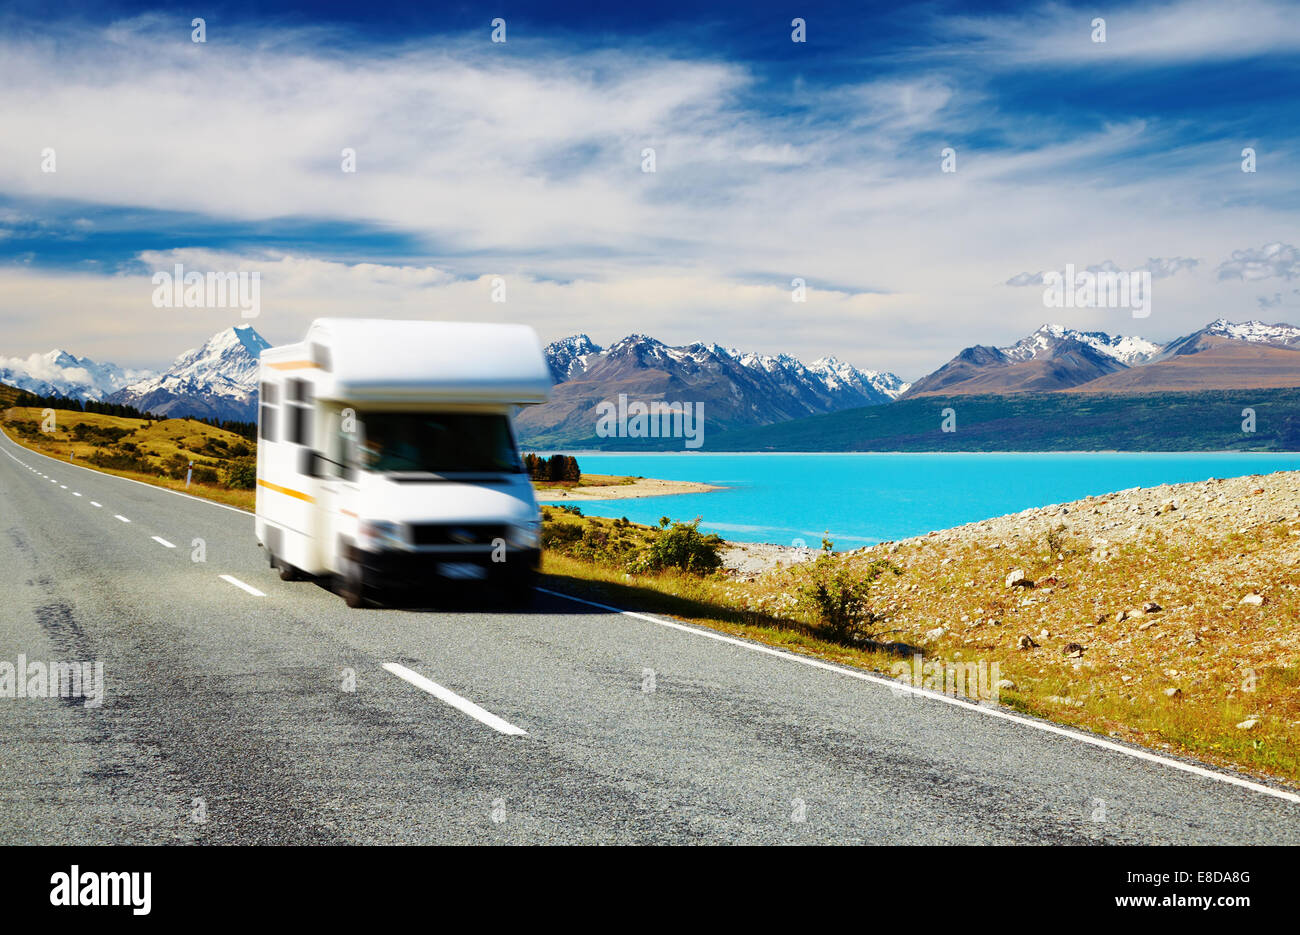 Traveling by motorhome, Mount Cook, New Zealand. Car in motion blur - Stock Image